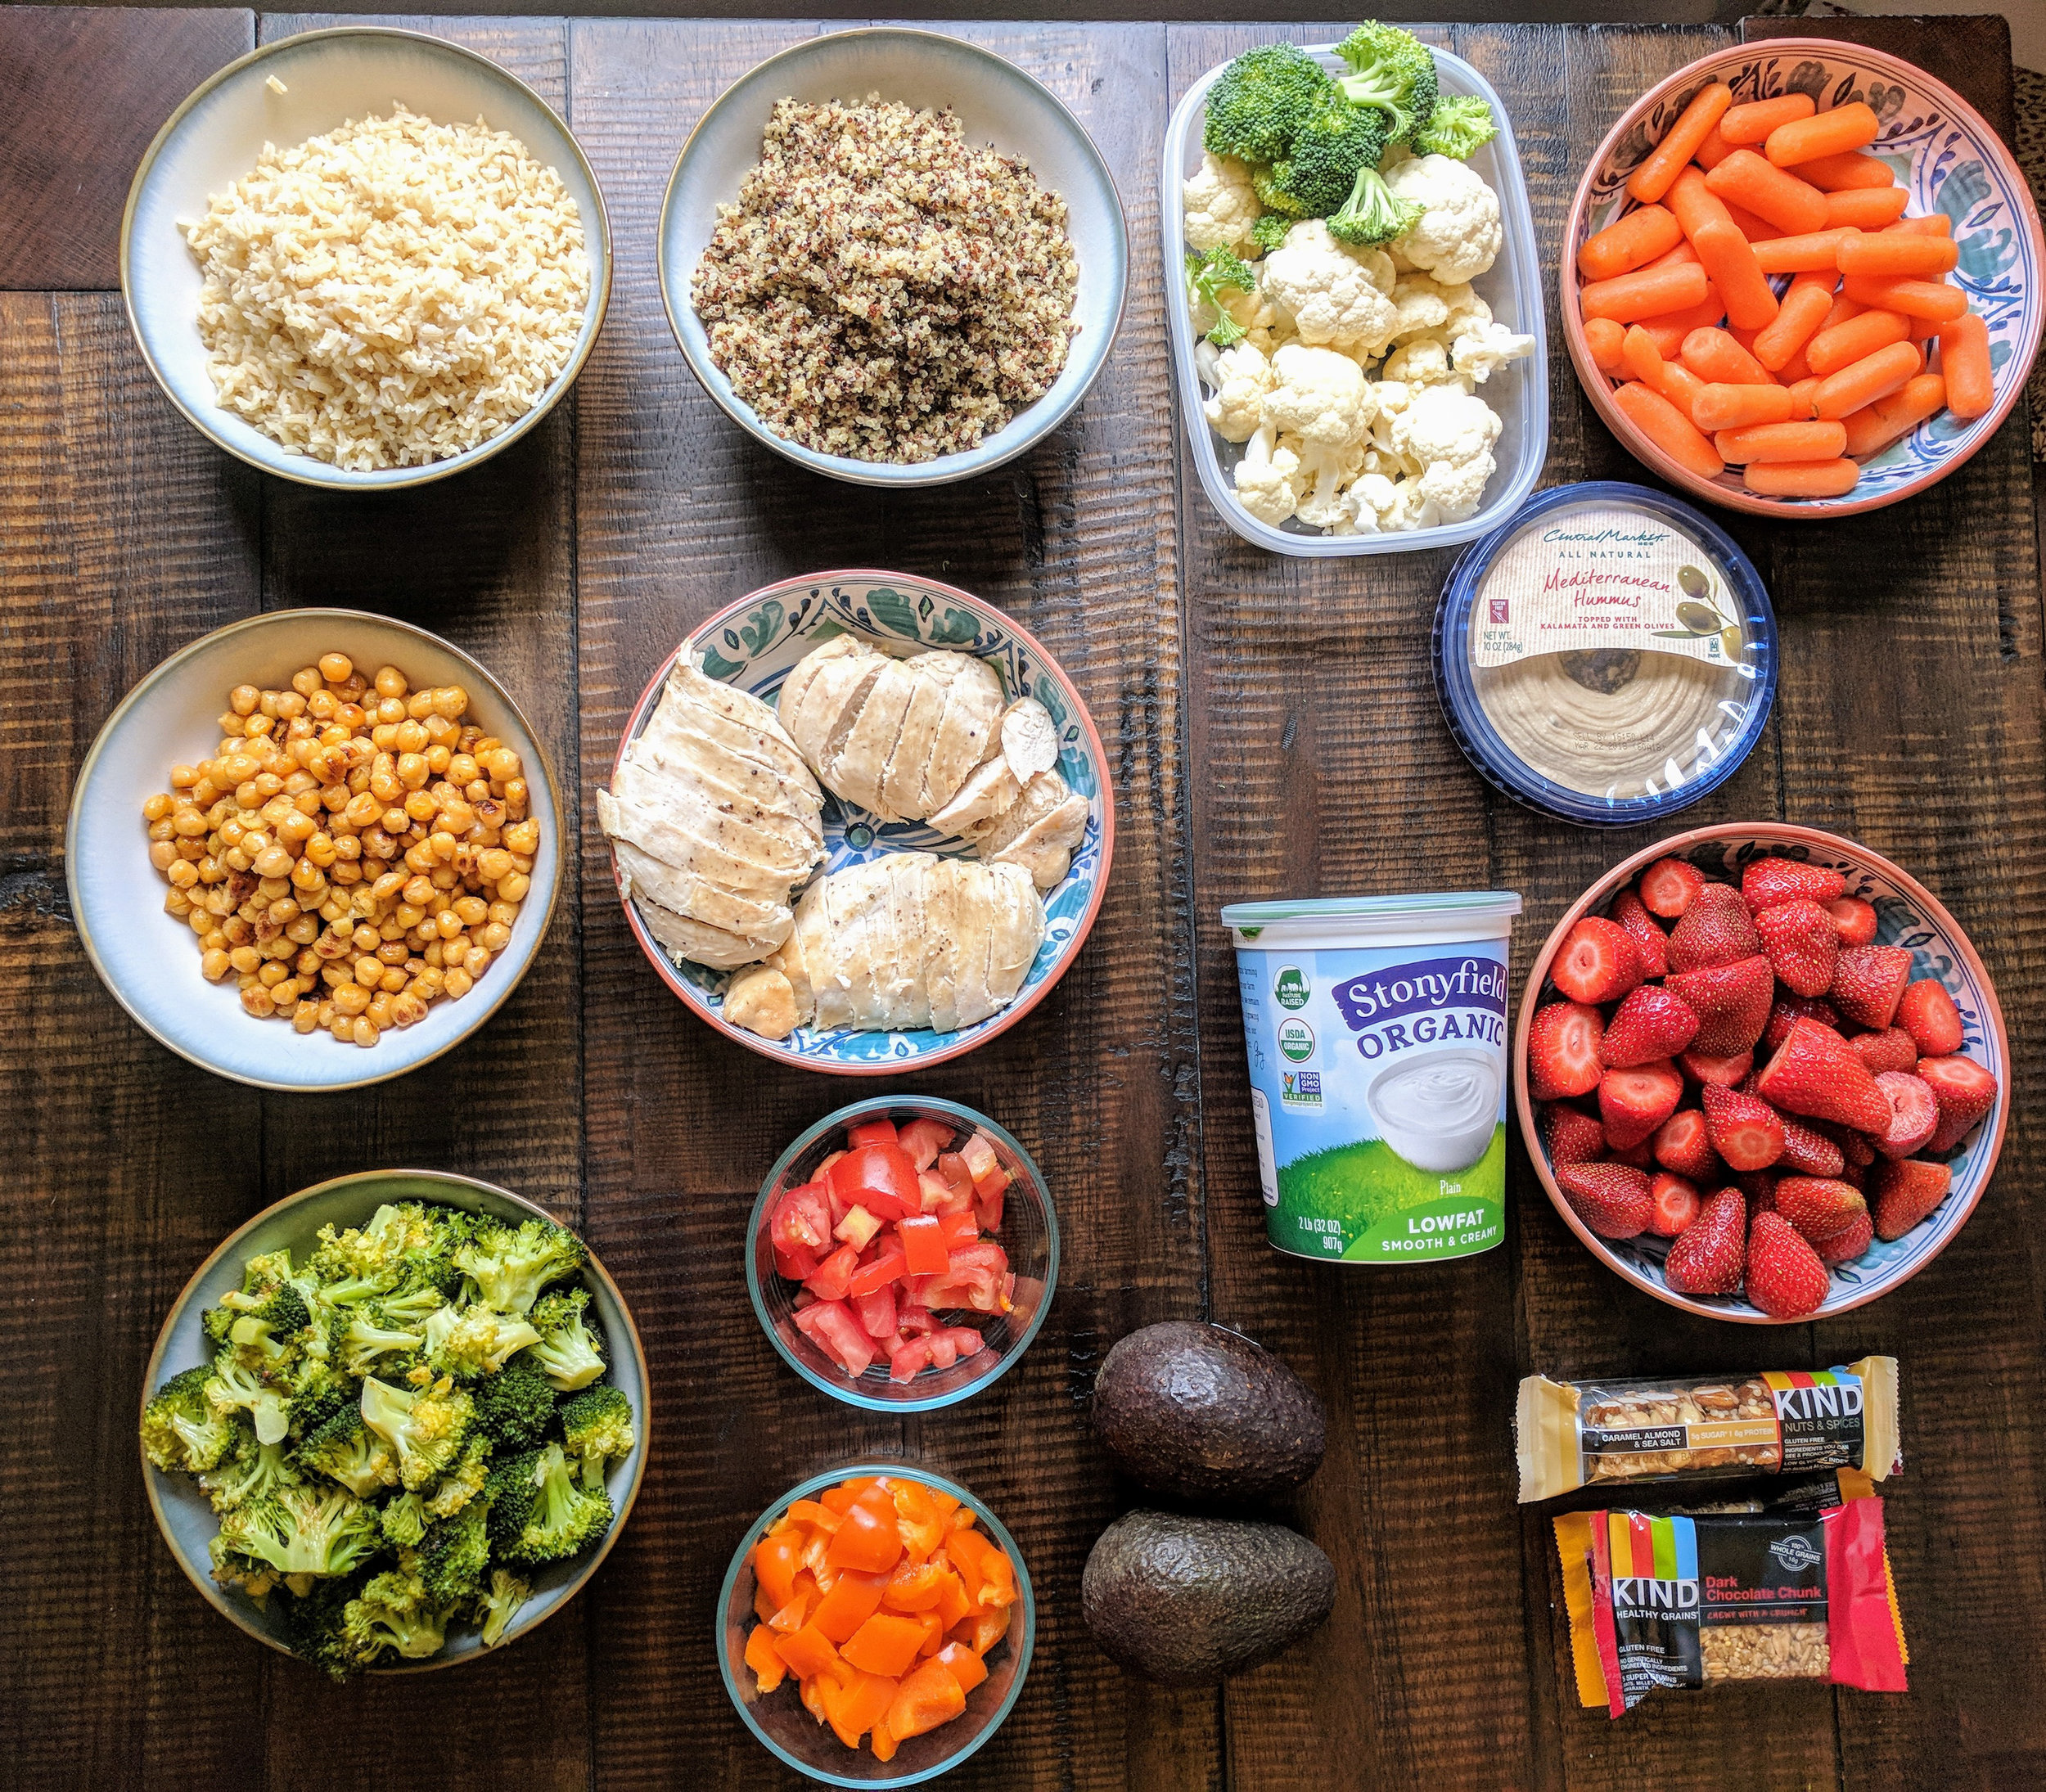 The final product of this meal preparation provides a variety of ingredients to build your own bowl including brown rice, quinoa, roasted chickpeas, grilled chicken, roasted broccoli, tomato, orange bell peppers, and avocados! Snacks are a breeze with hummus and pre - cut carrots, broccoli, and cauliflower. Breakfast are KIND bars and plain yogurt with strawberries for a sweet evening snack.